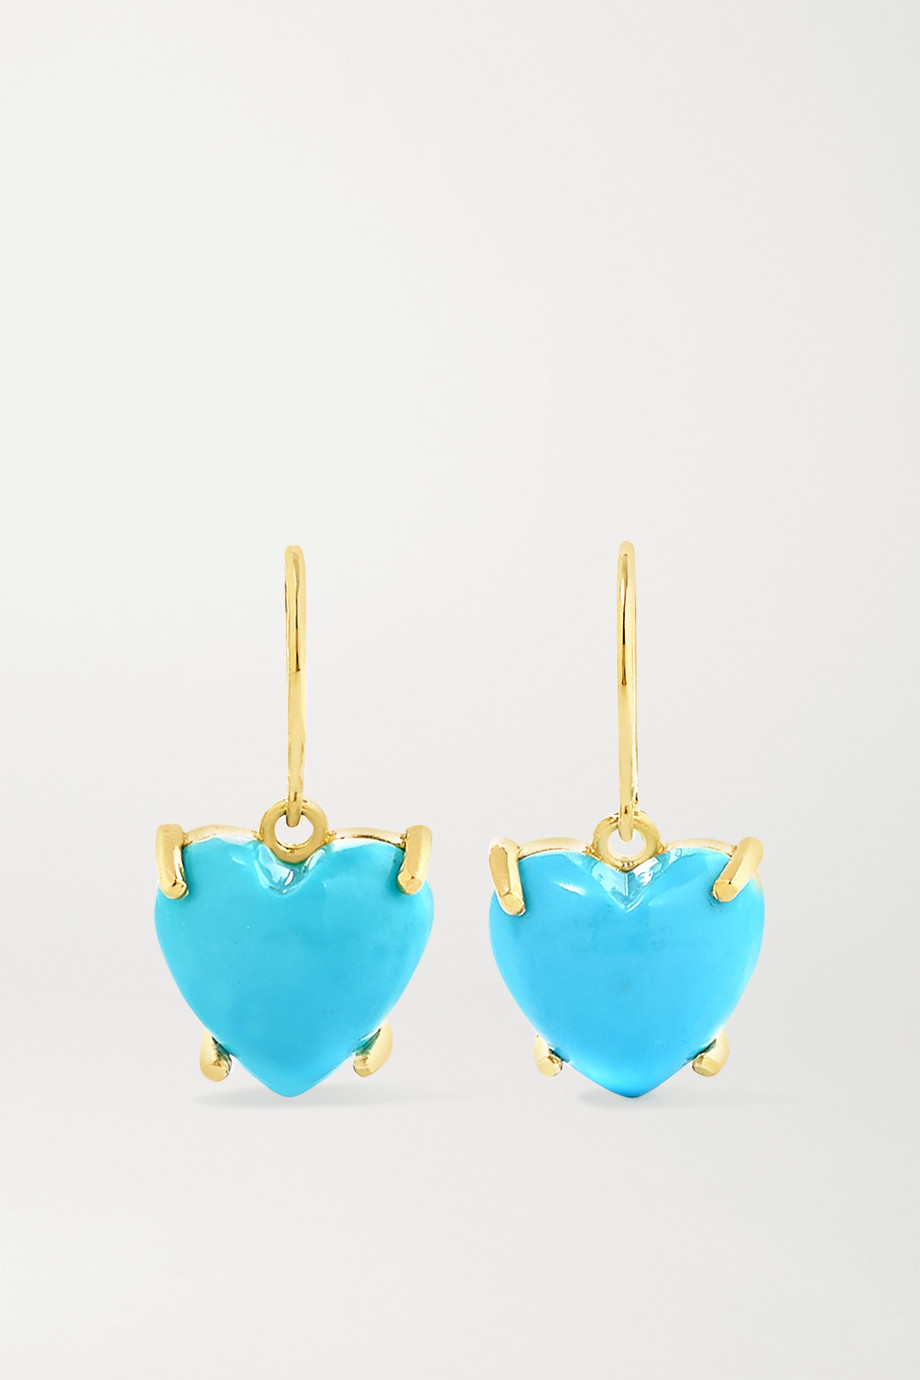 Irene Neuwirth Love 18-karat gold turquoise earrings